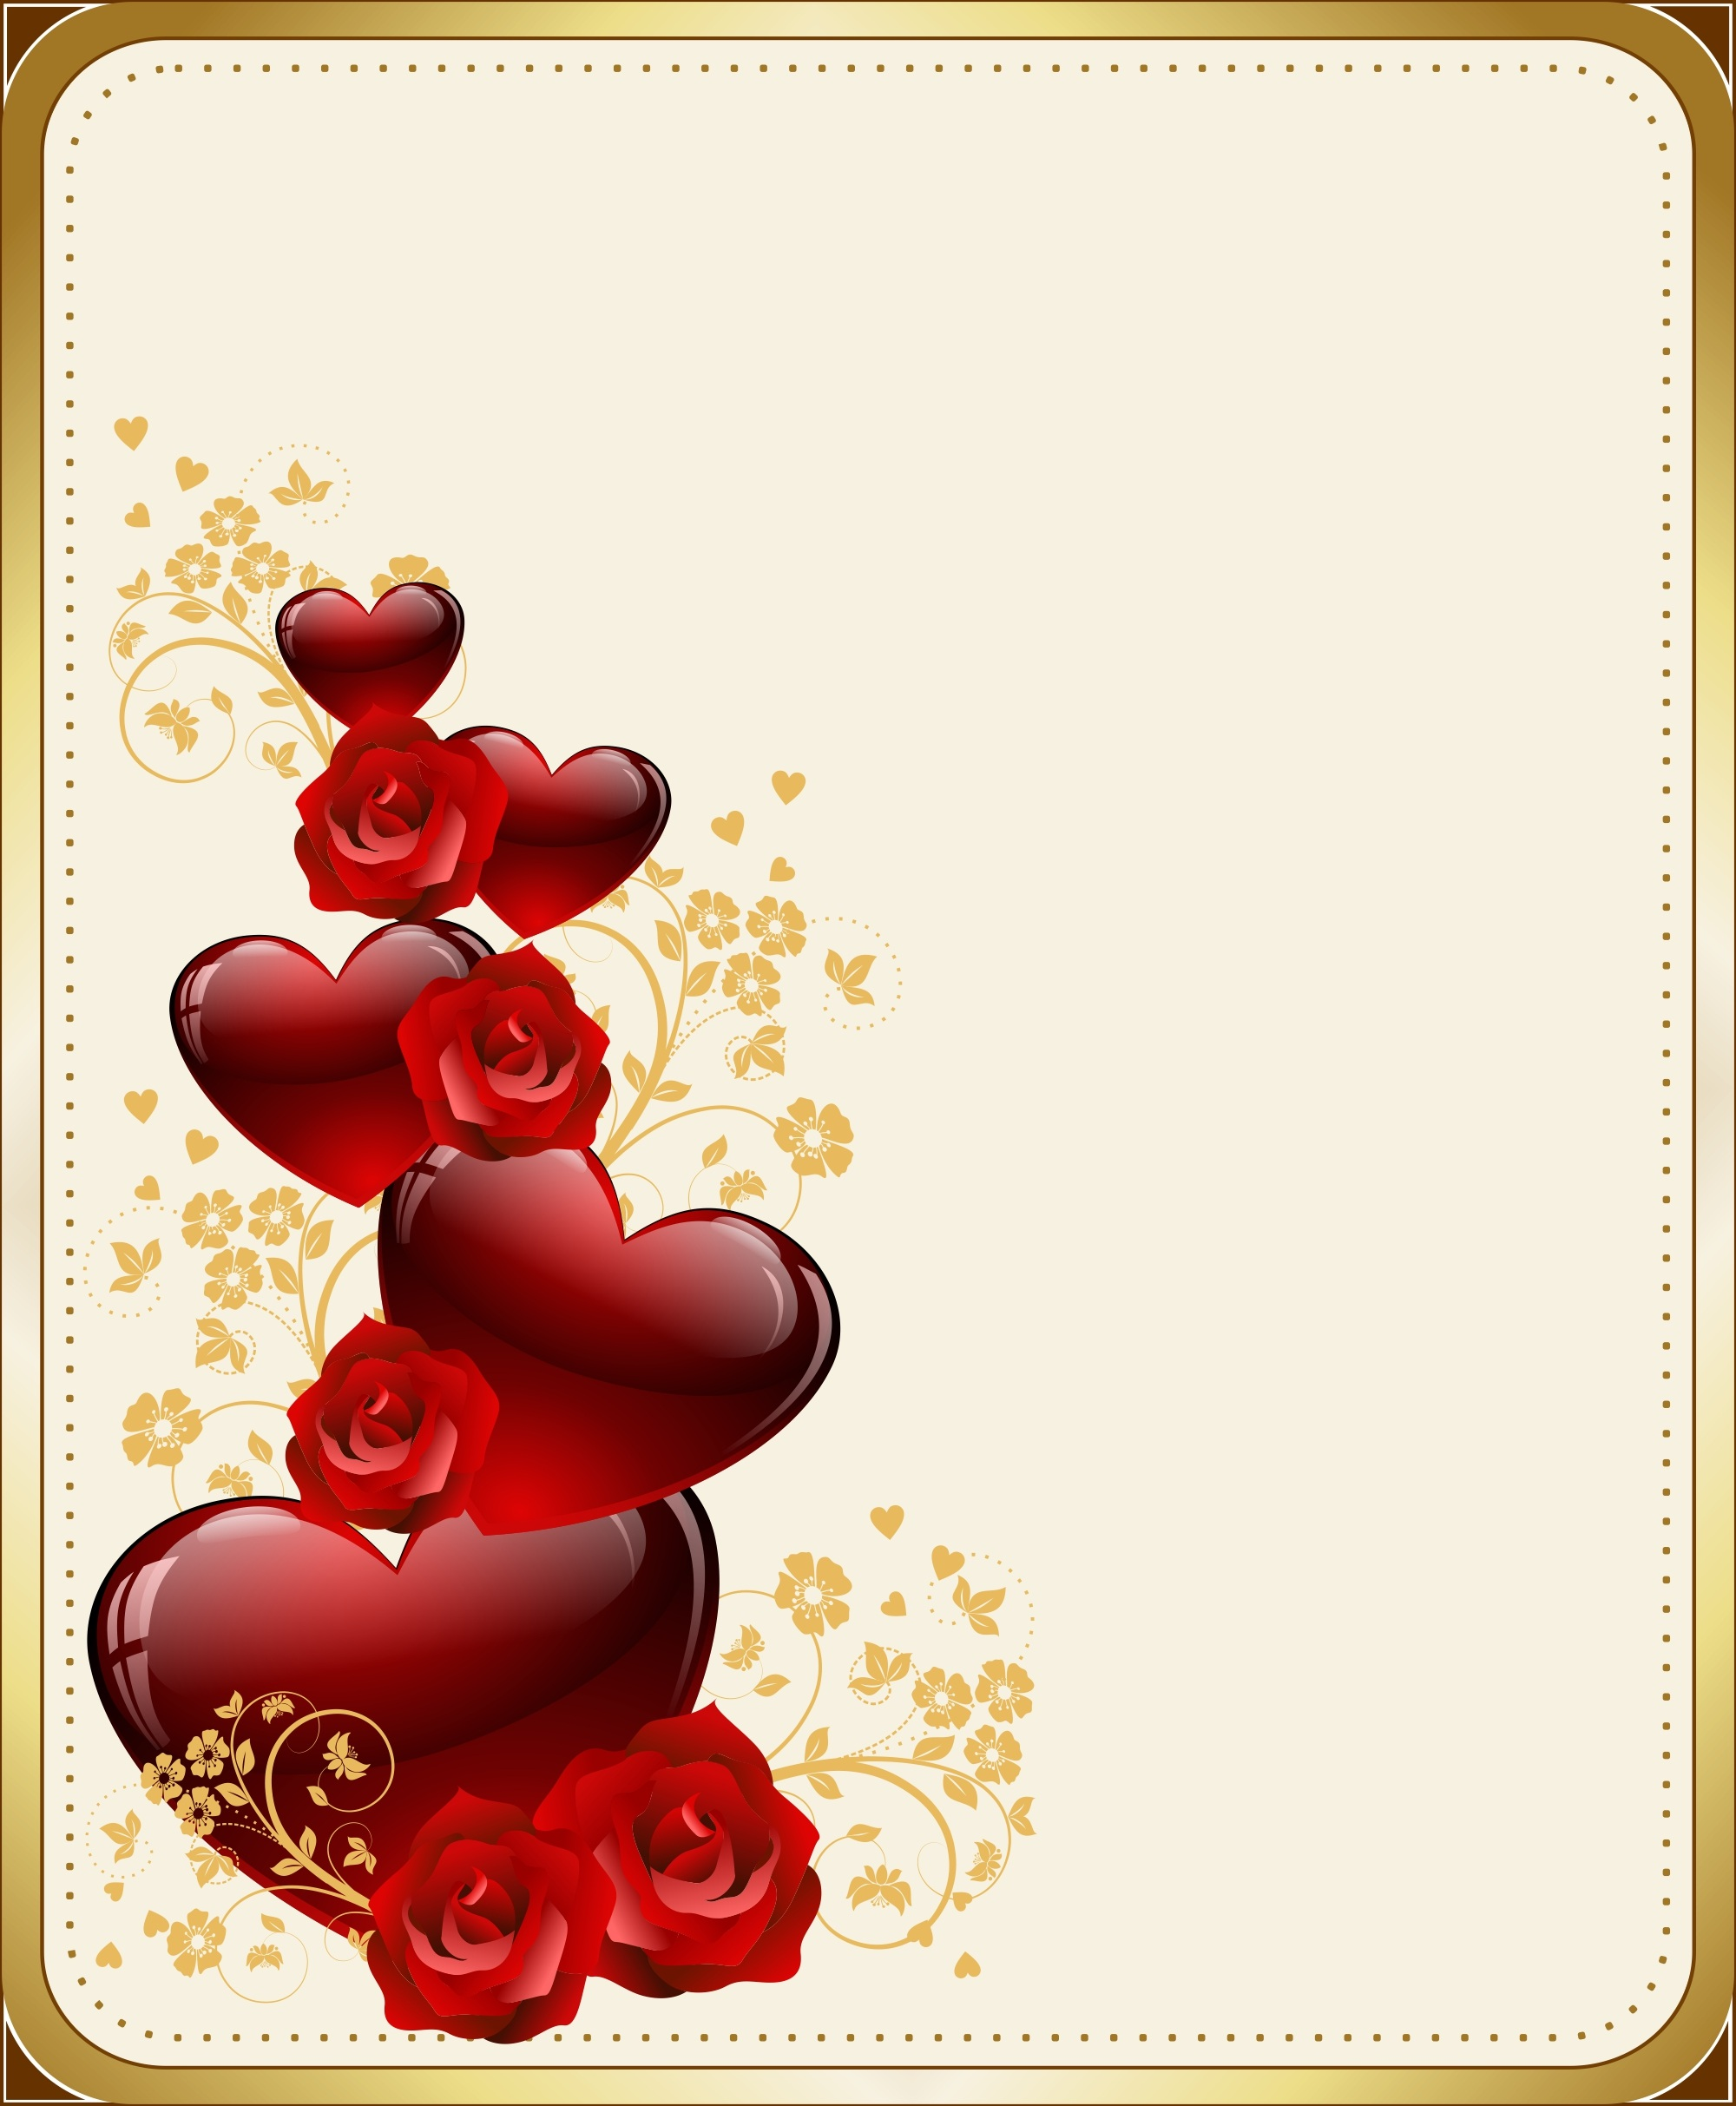 Romantic background with hearts and roses free image